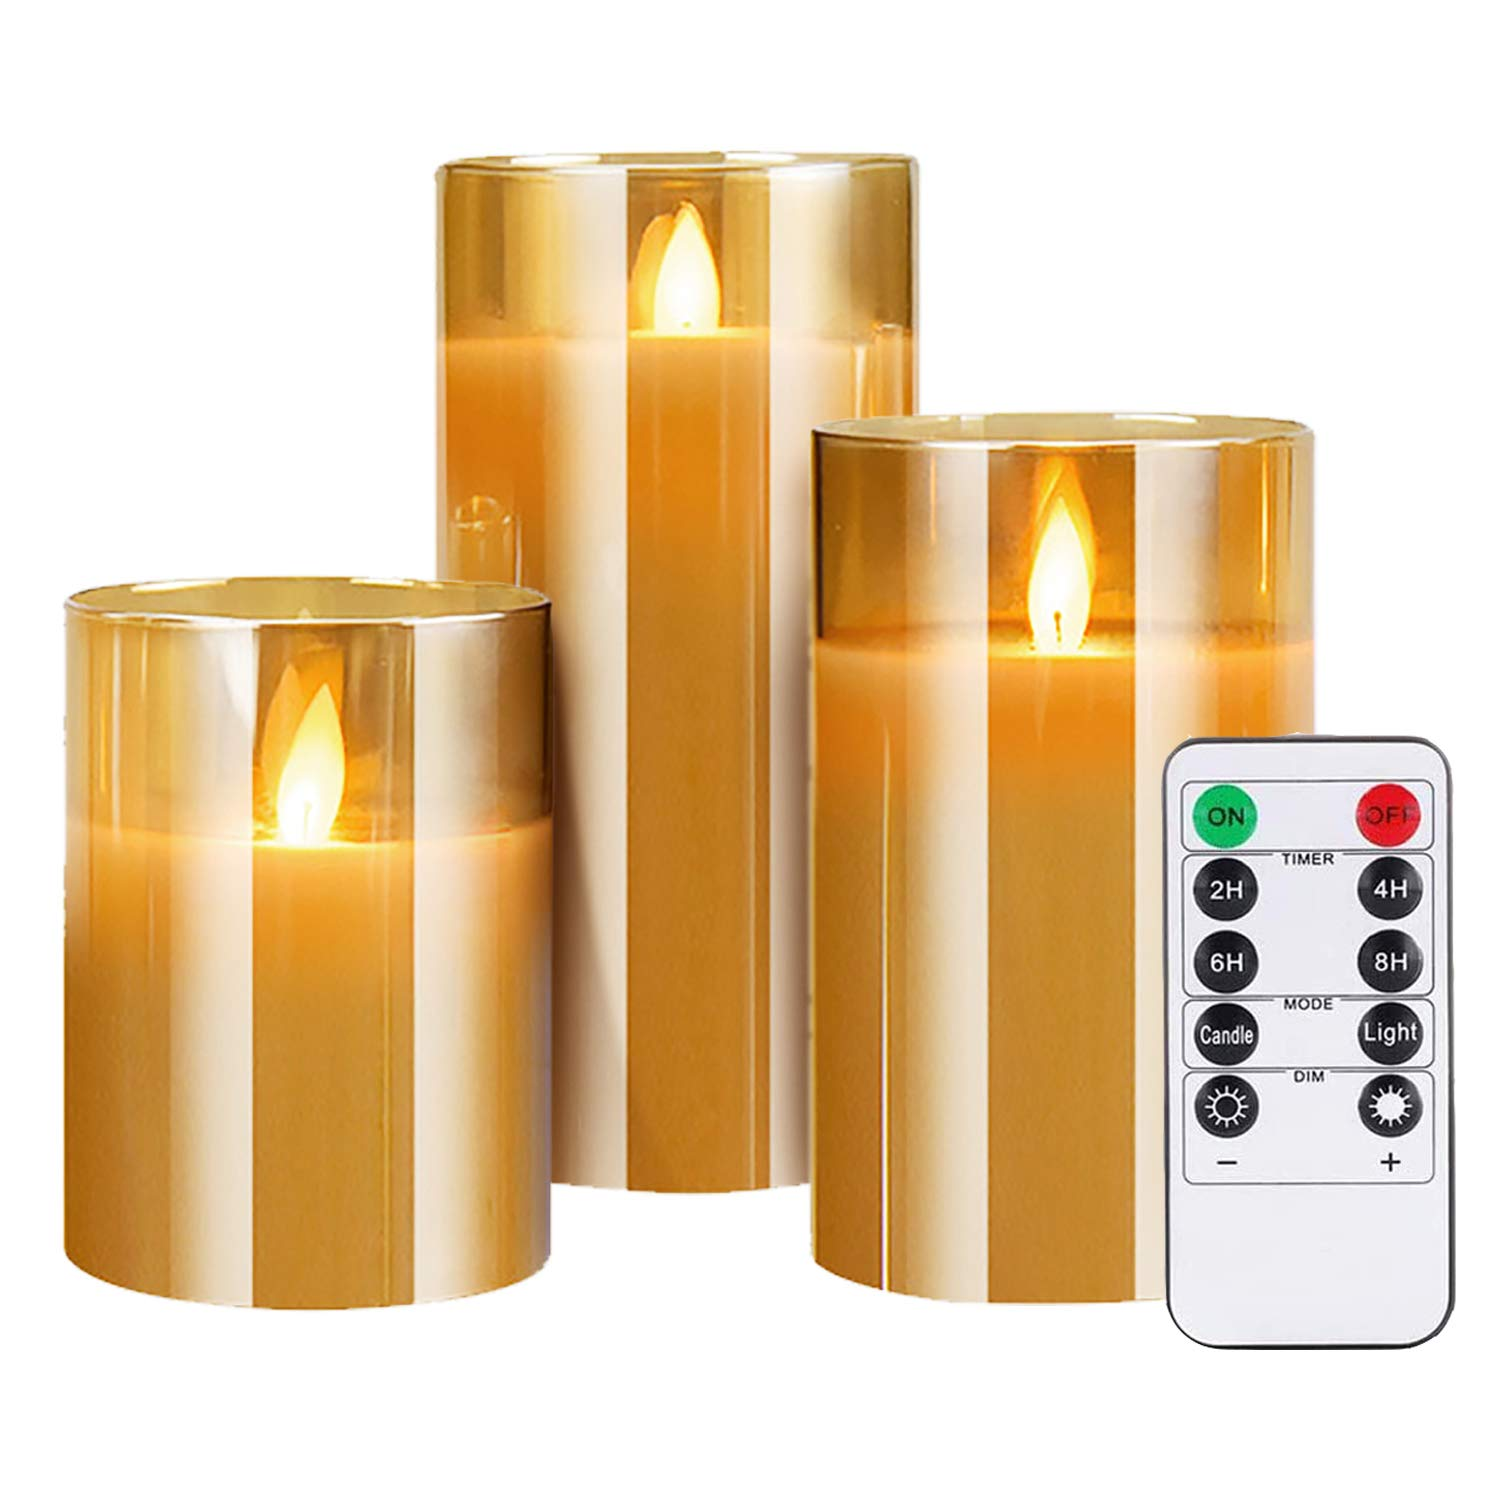 """Flameless LED Candles Flickering with Timer Remote, Gold Glass Battery Operated Electric Candles, Real Wax Pillar Candles for Festival Party Home Decor, 4"""" 5"""" 6"""" Set of 3"""